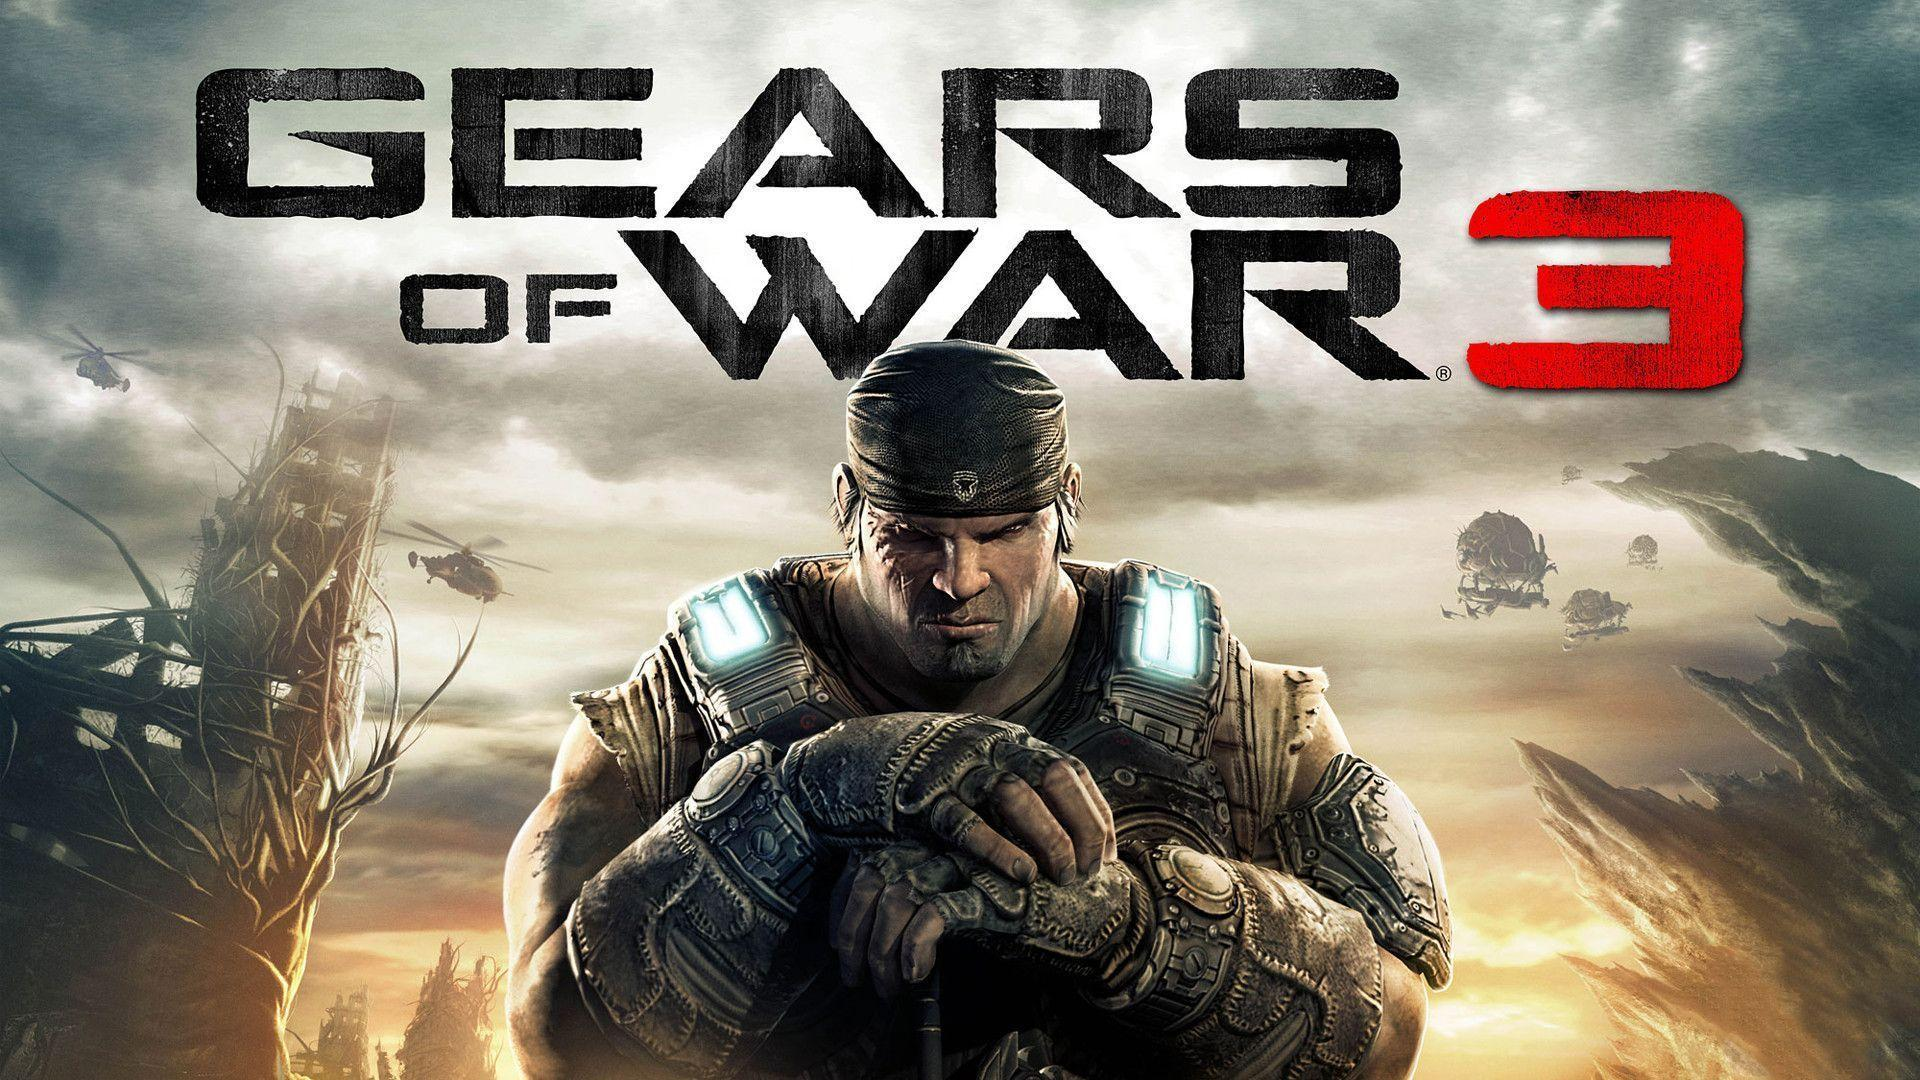 Wallpapers For > Gears Of War 3 Wallpapers 1080p